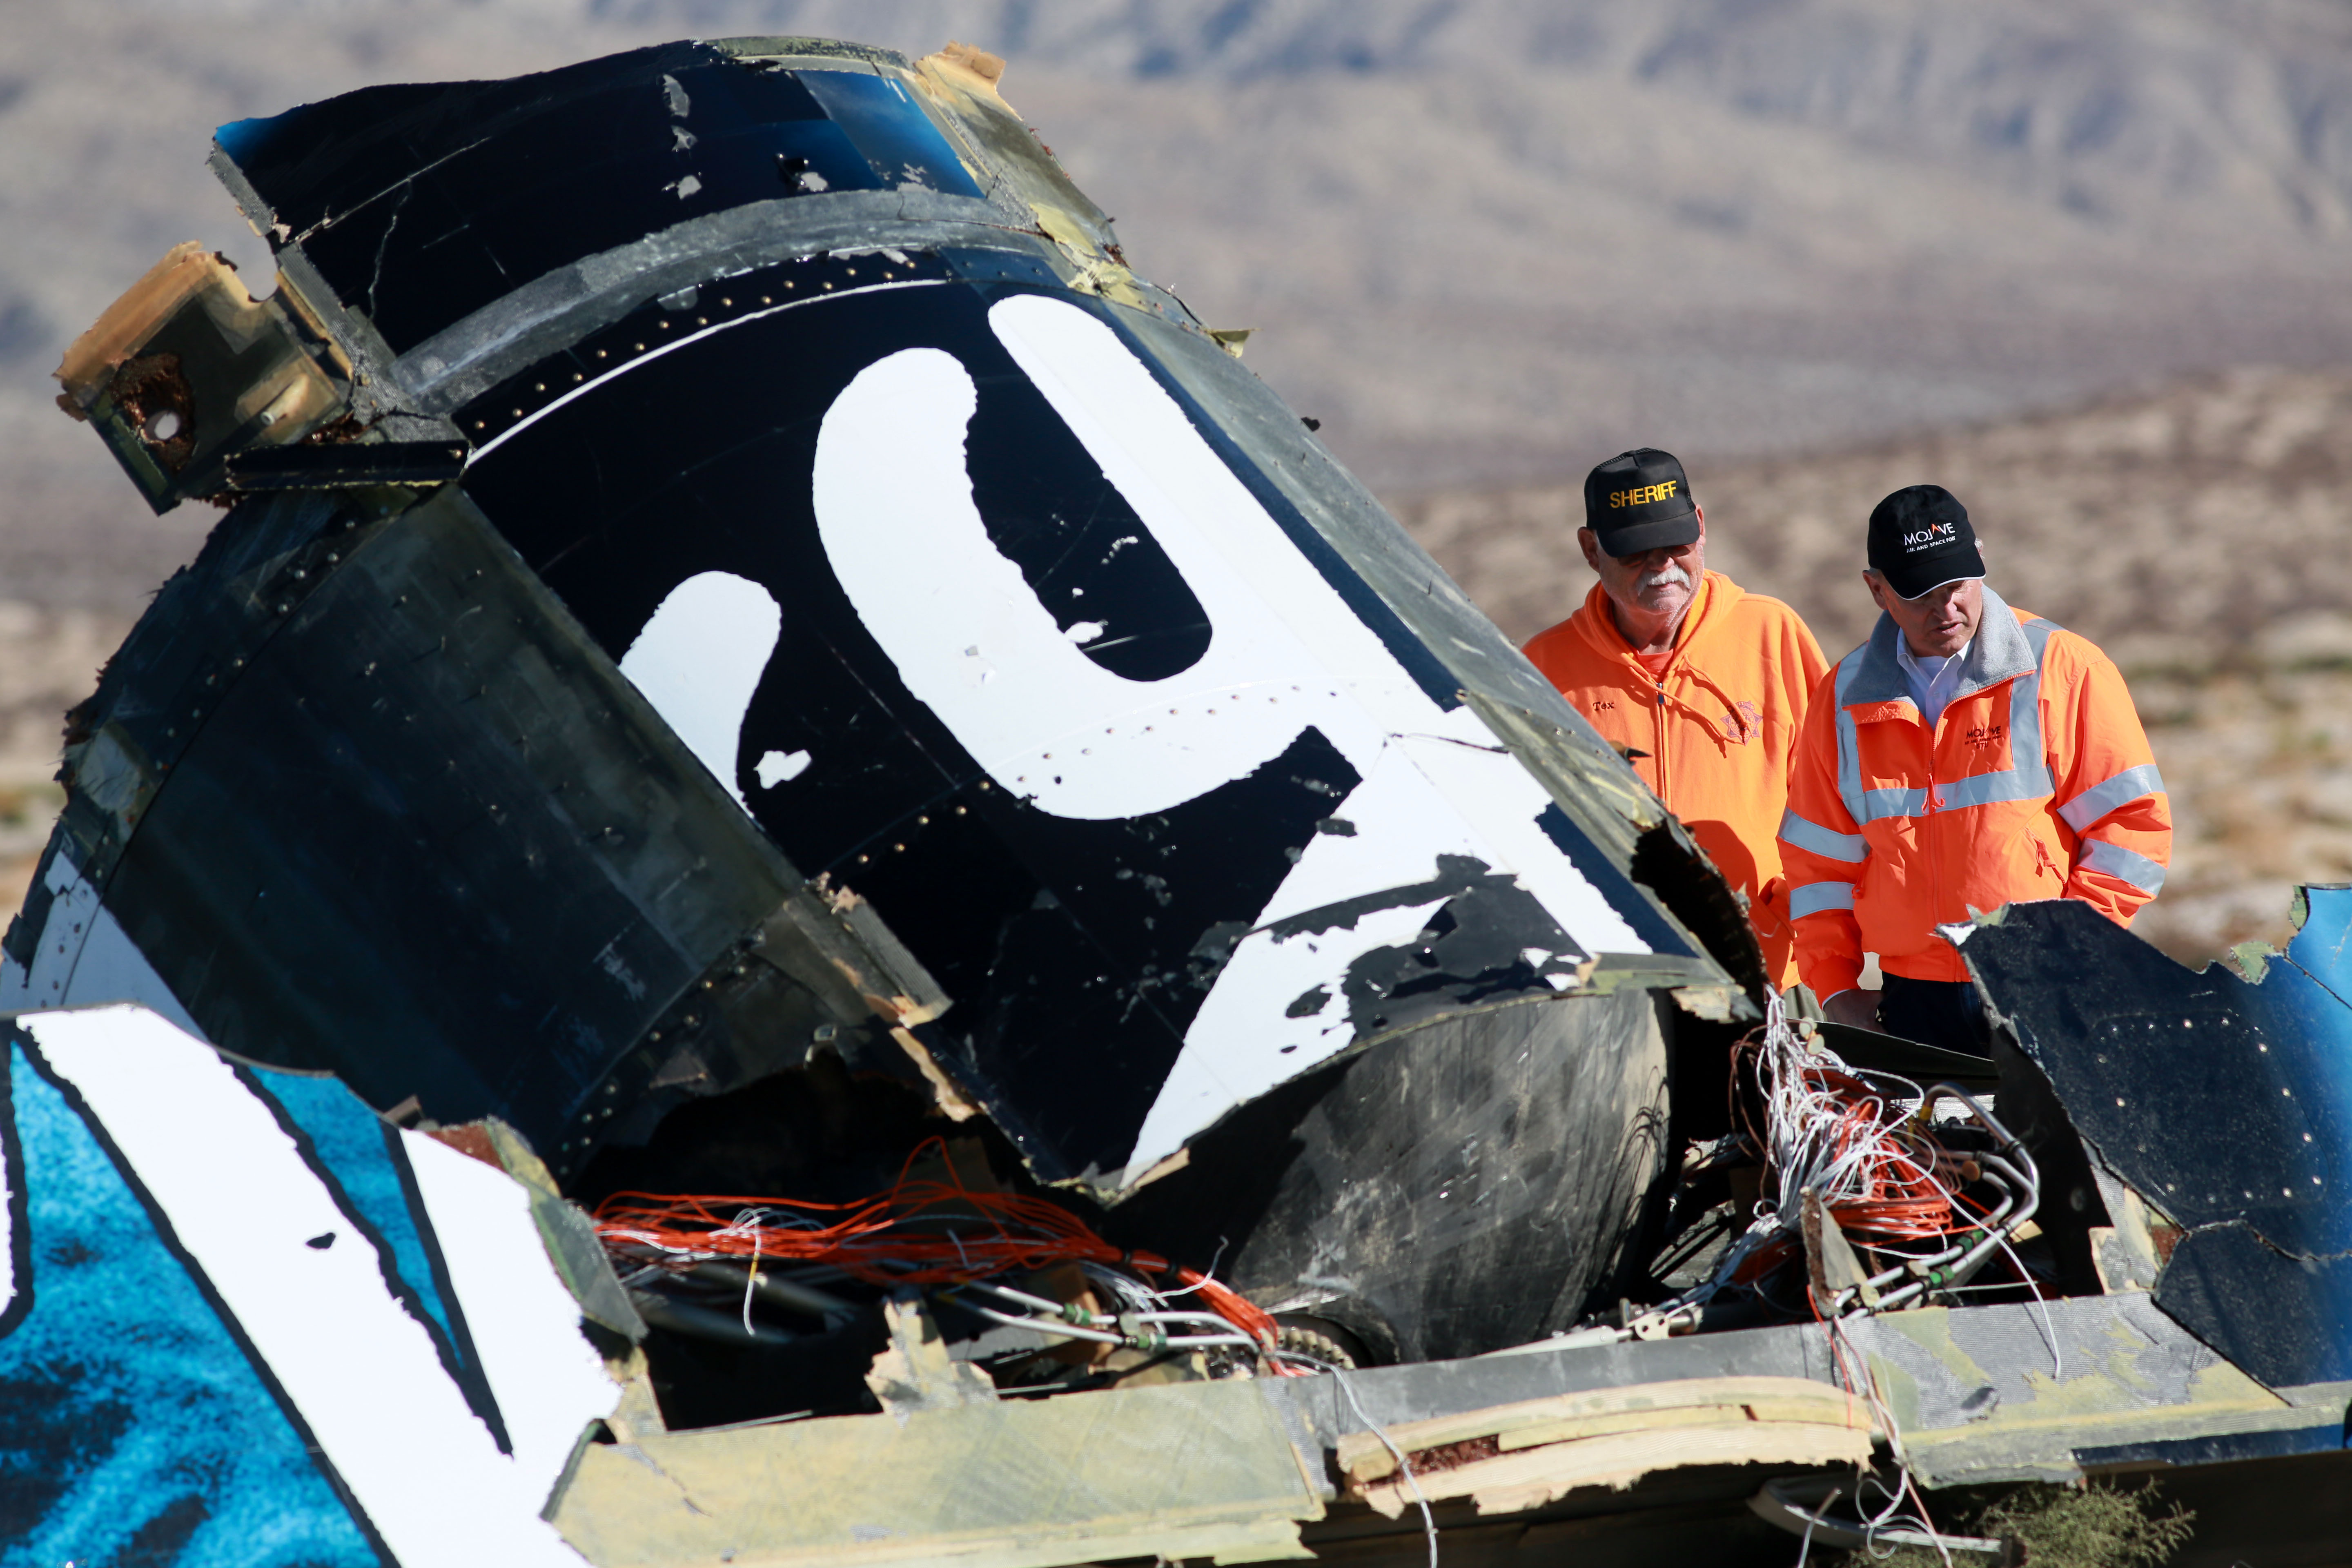 Sheriff's deputies inspect the wreckage of the Virgin Galactic SpaceShip 2 in a desert field November 2, 2014 north of Mojave, California on The Virgin Galactic SpaceShip 2 crashed on October 31, 2014 during a test flight, killing one pilot and seriously injuring another.